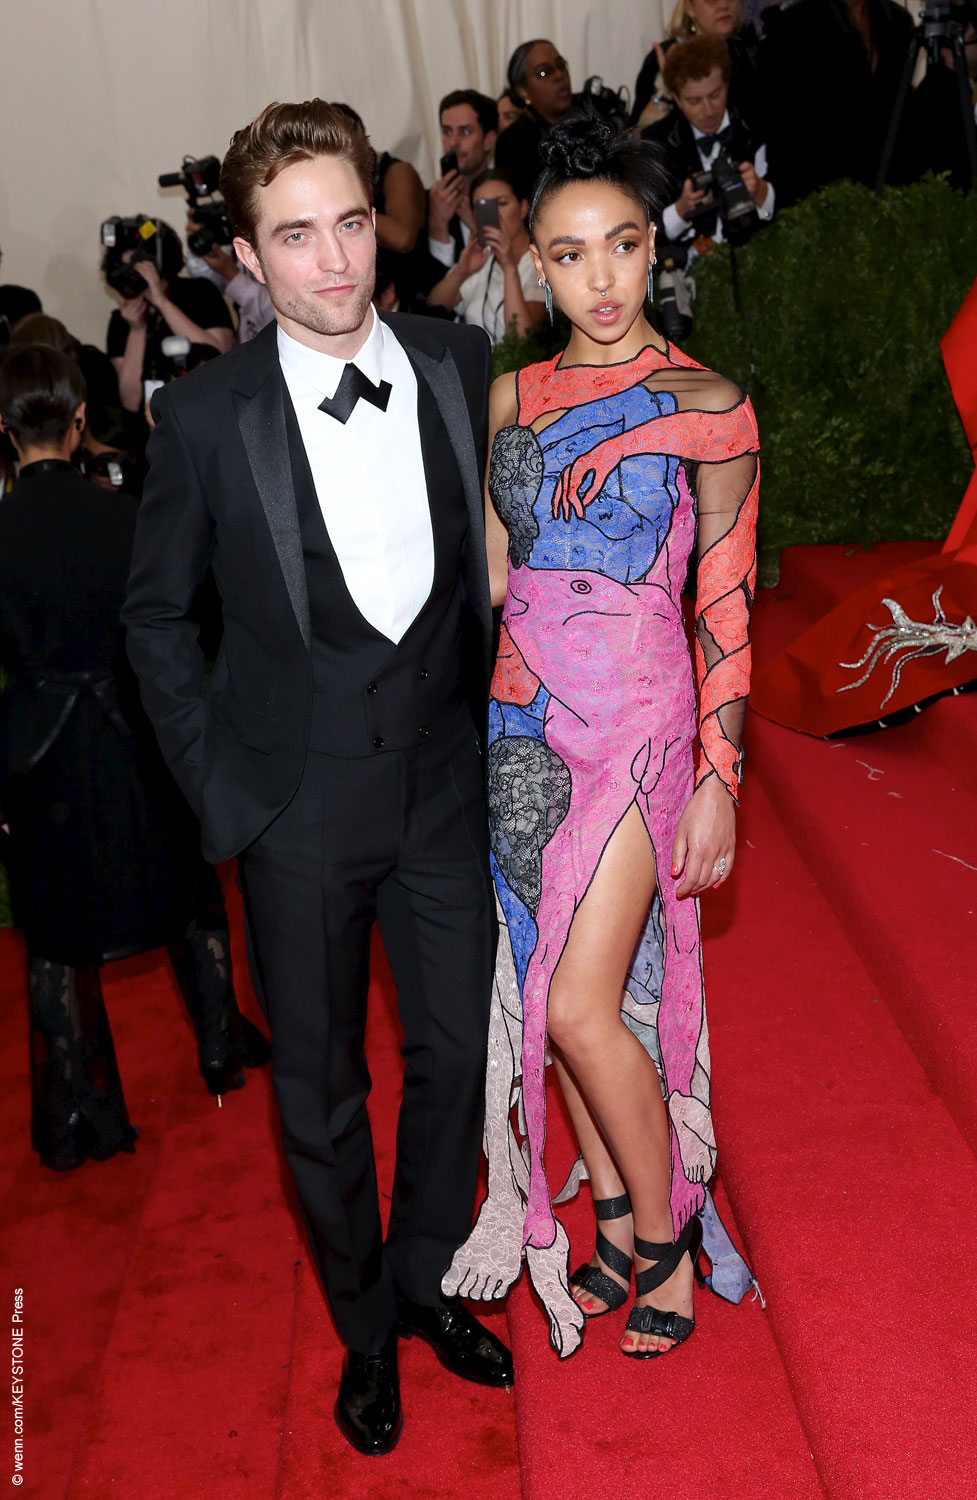 Robert Pattinson and his fiancée FKA Twigs walked the Met's red carpet together, their red carpet debut as a couple. Twigs got everyone talking when she wore a Christopher Kane dress printed with erotic body parts on it, while Robert looked handsome in a black tux.